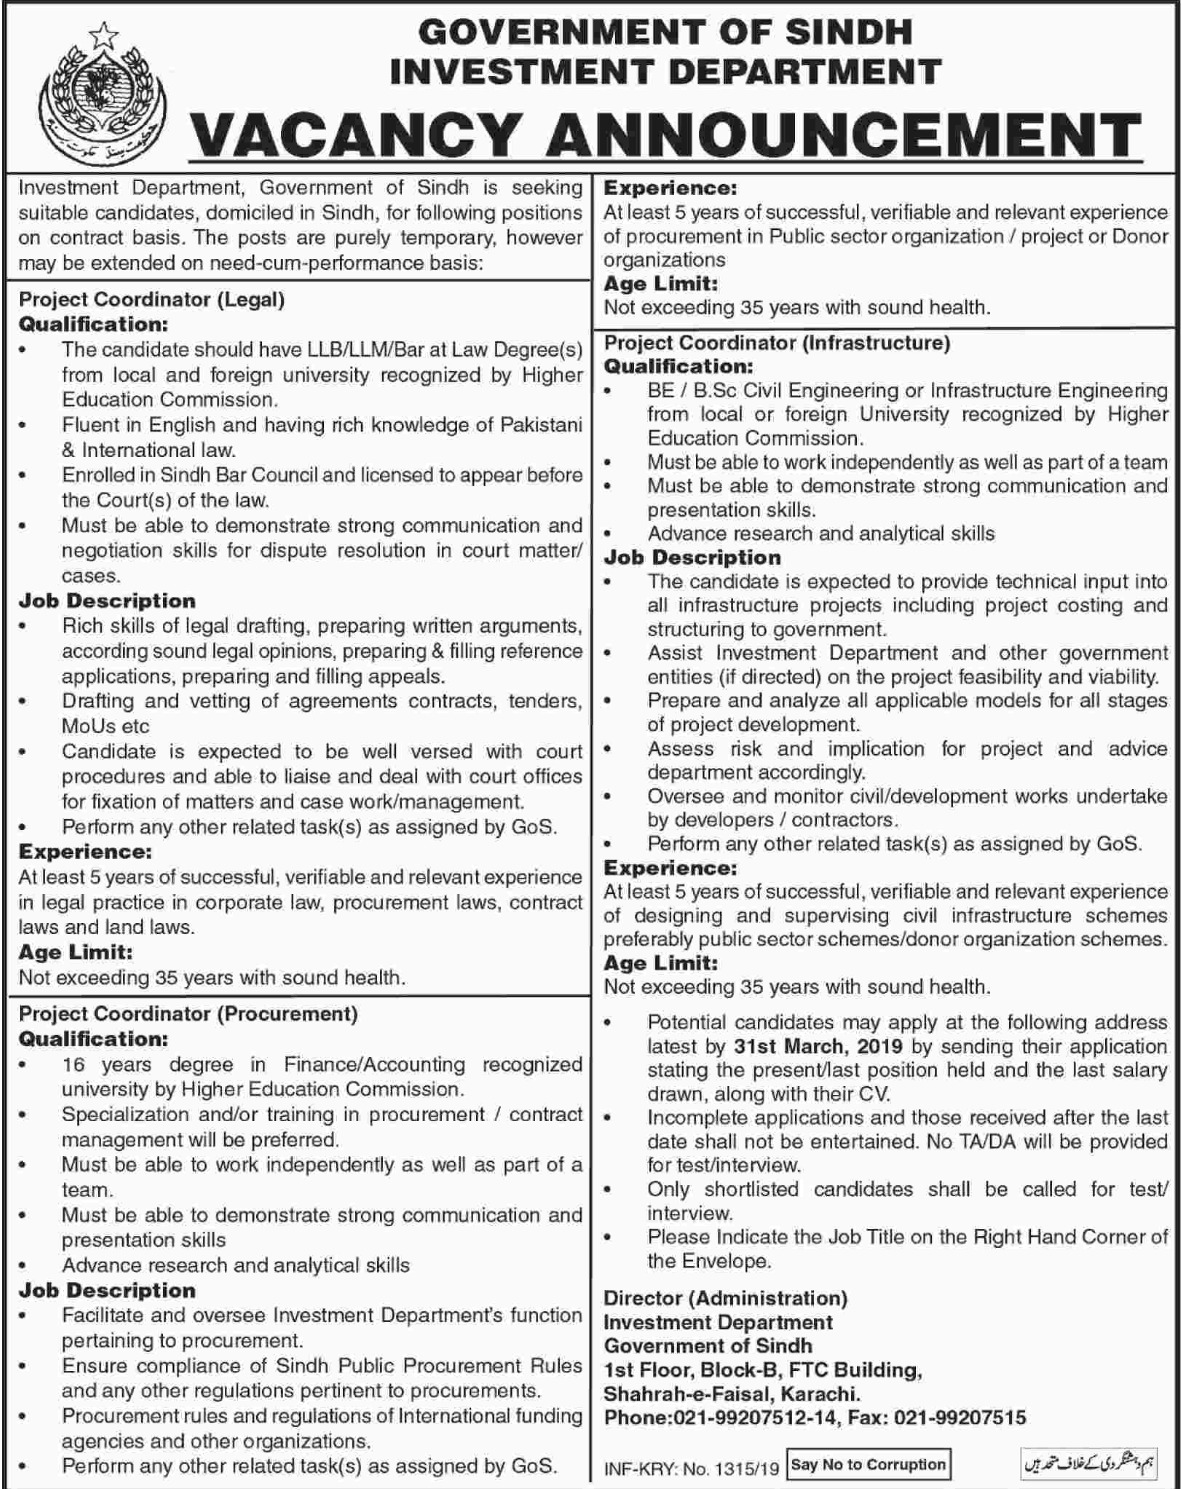 Investment Department Karachi Jobs 2019 Latest